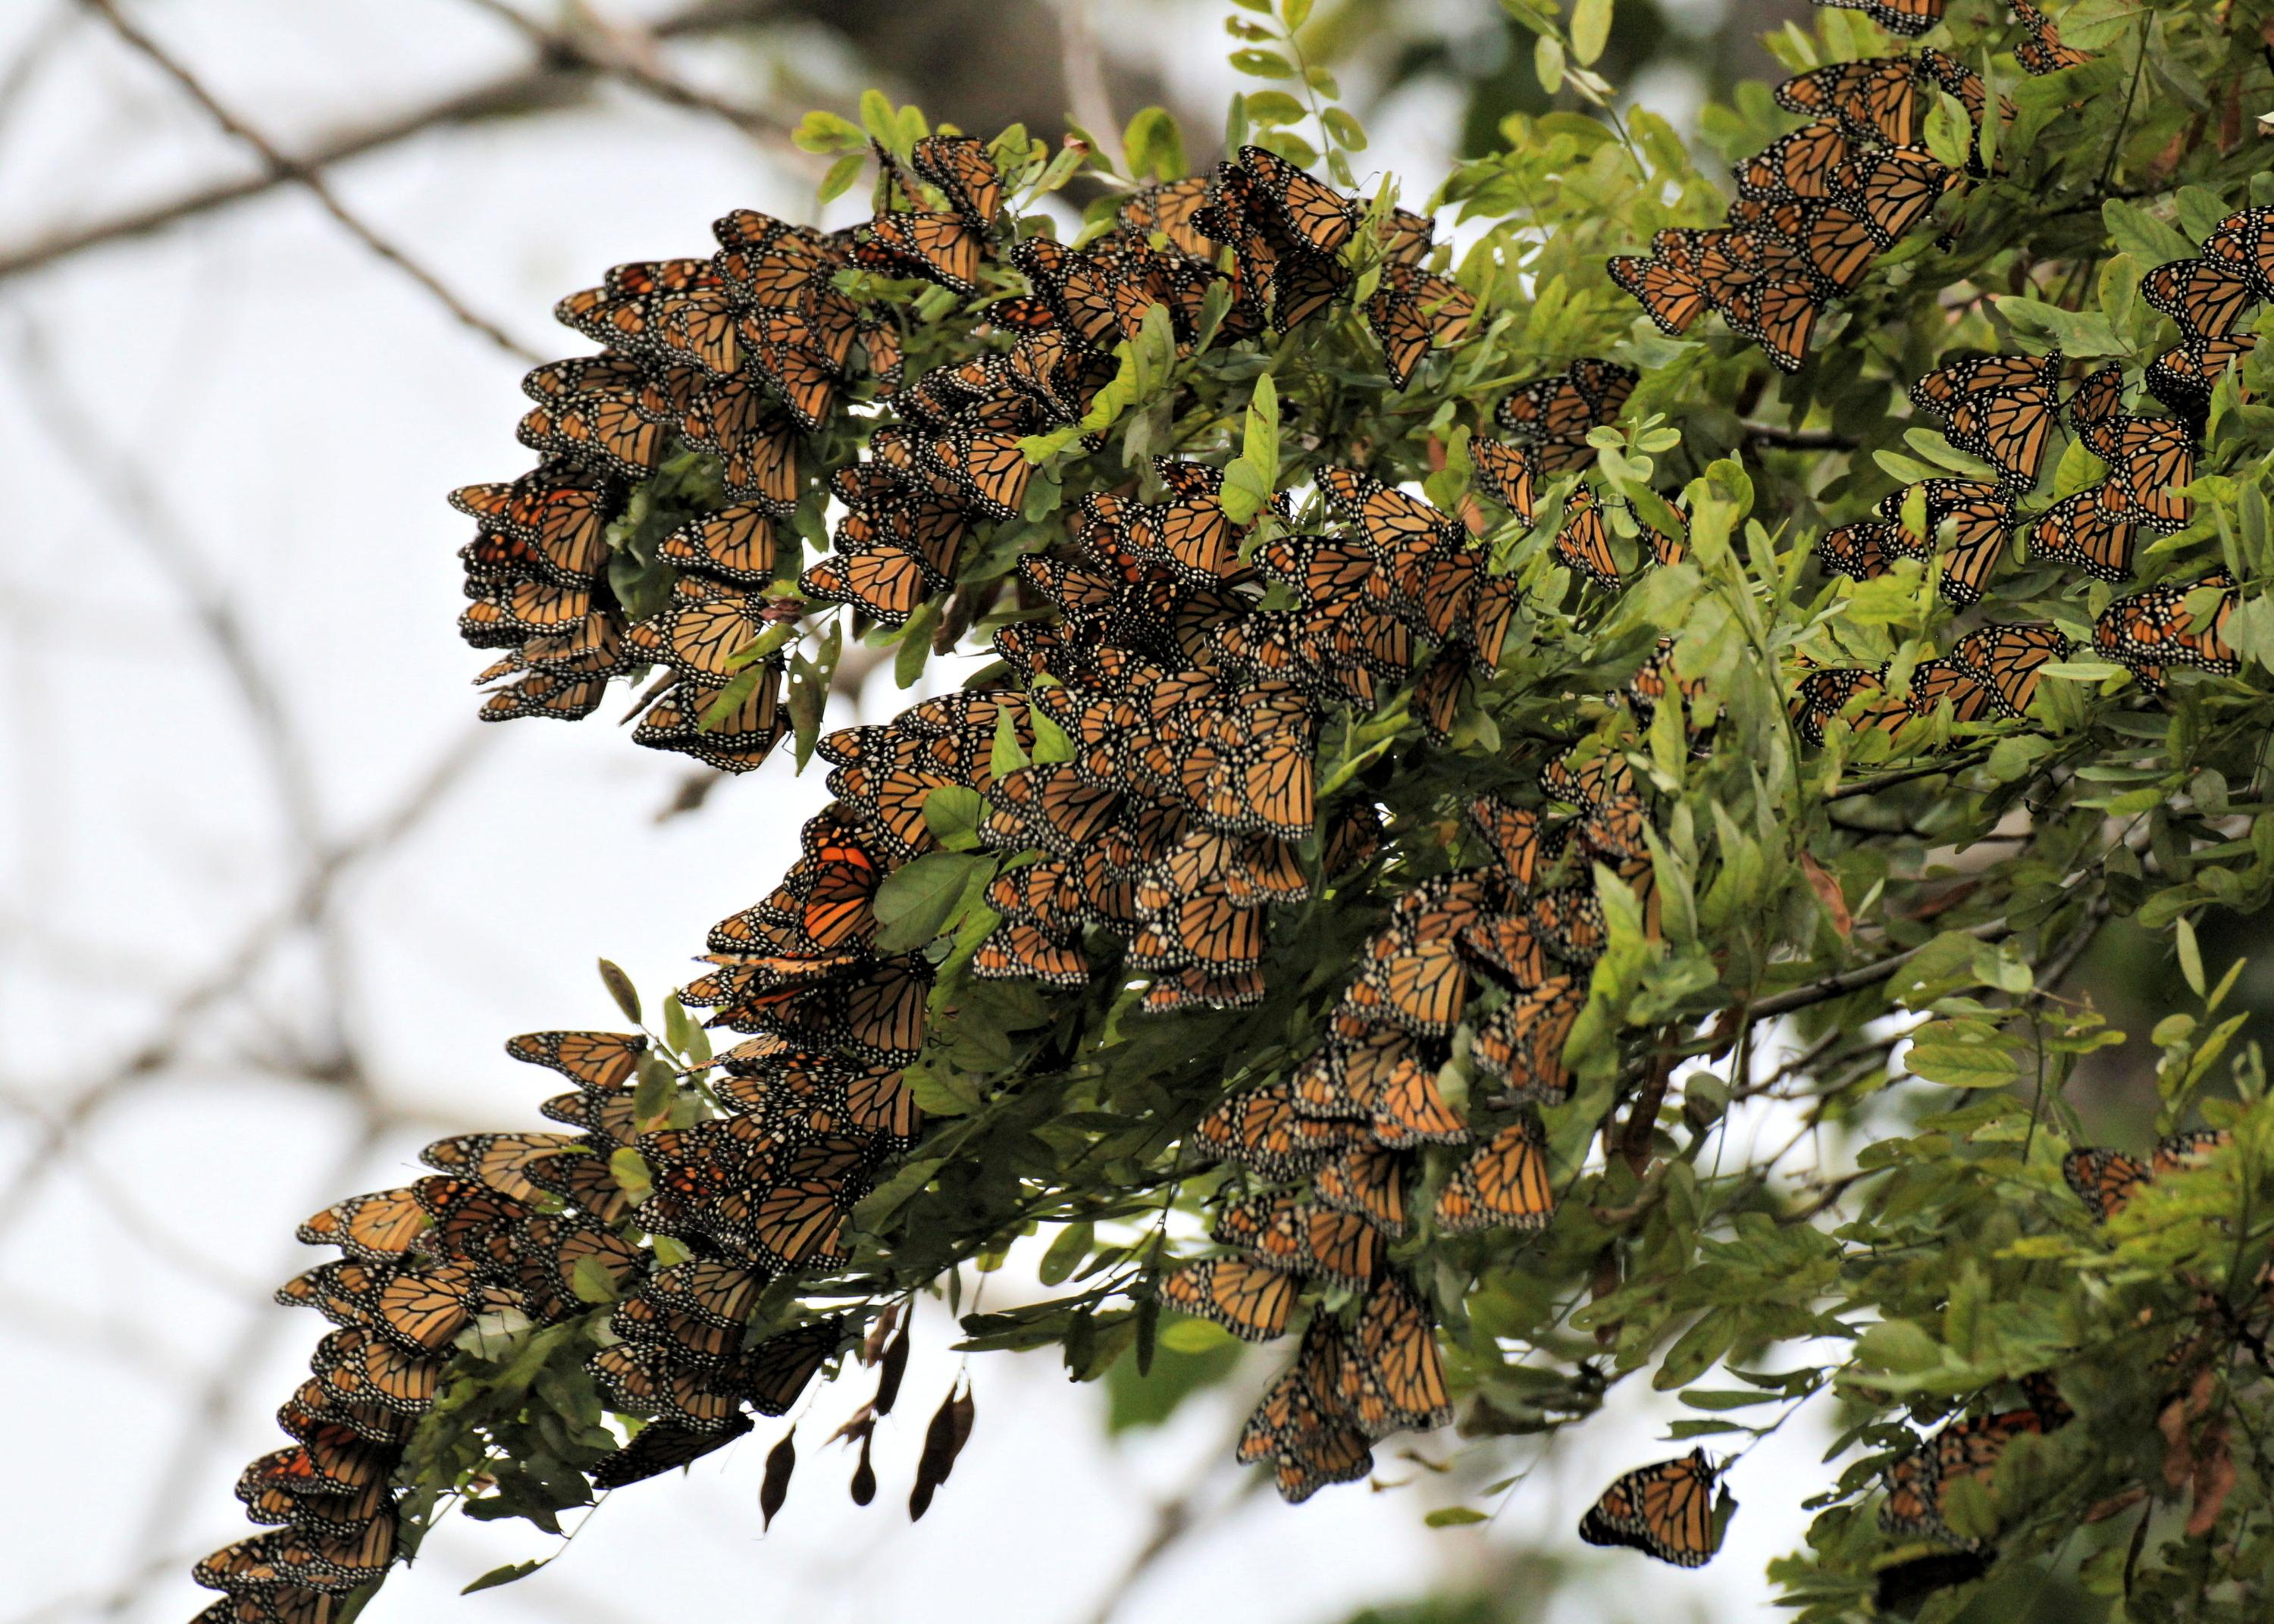 Monarch Butterfly Migration: The Overnight Roost